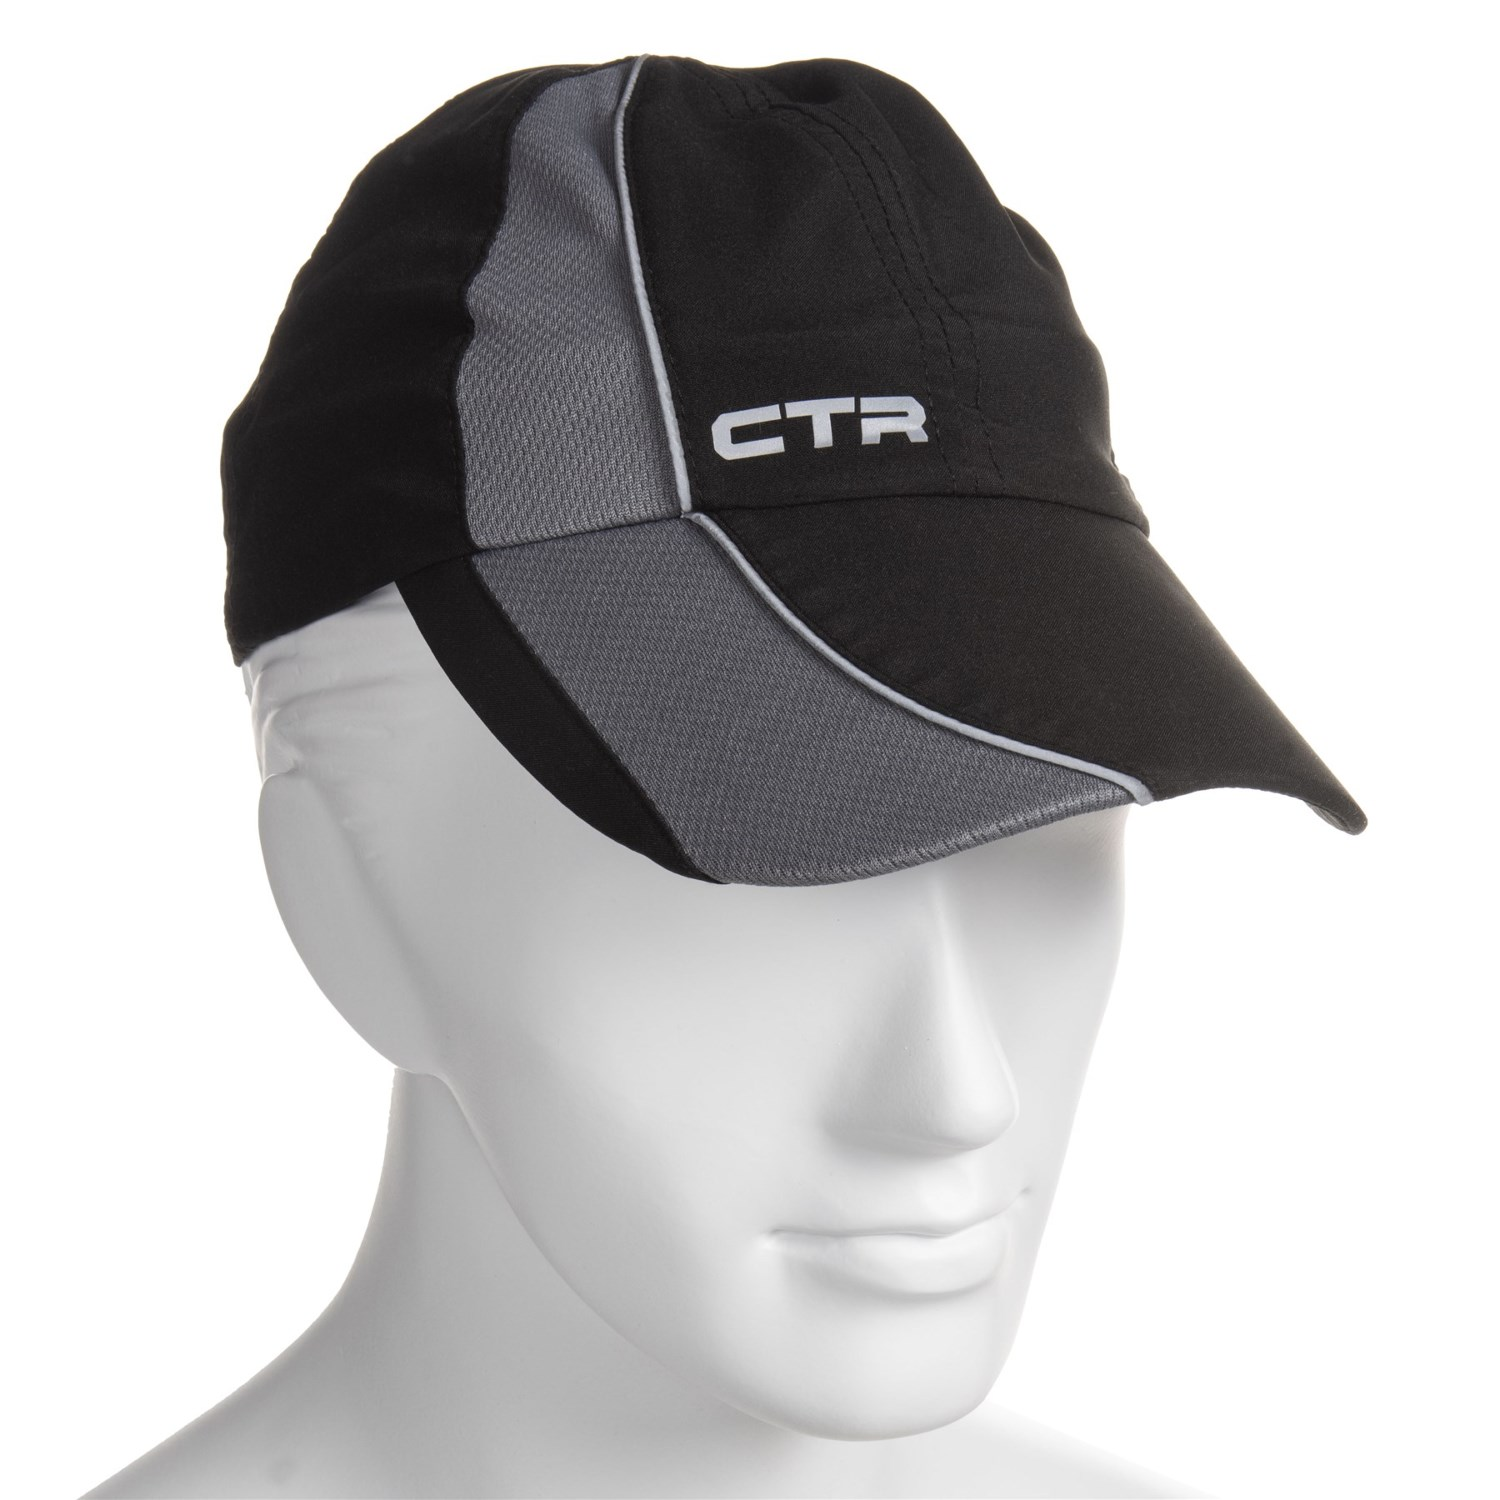 d06c6732b CTR Colorblocked Running Cap (For Men) - Save 33%